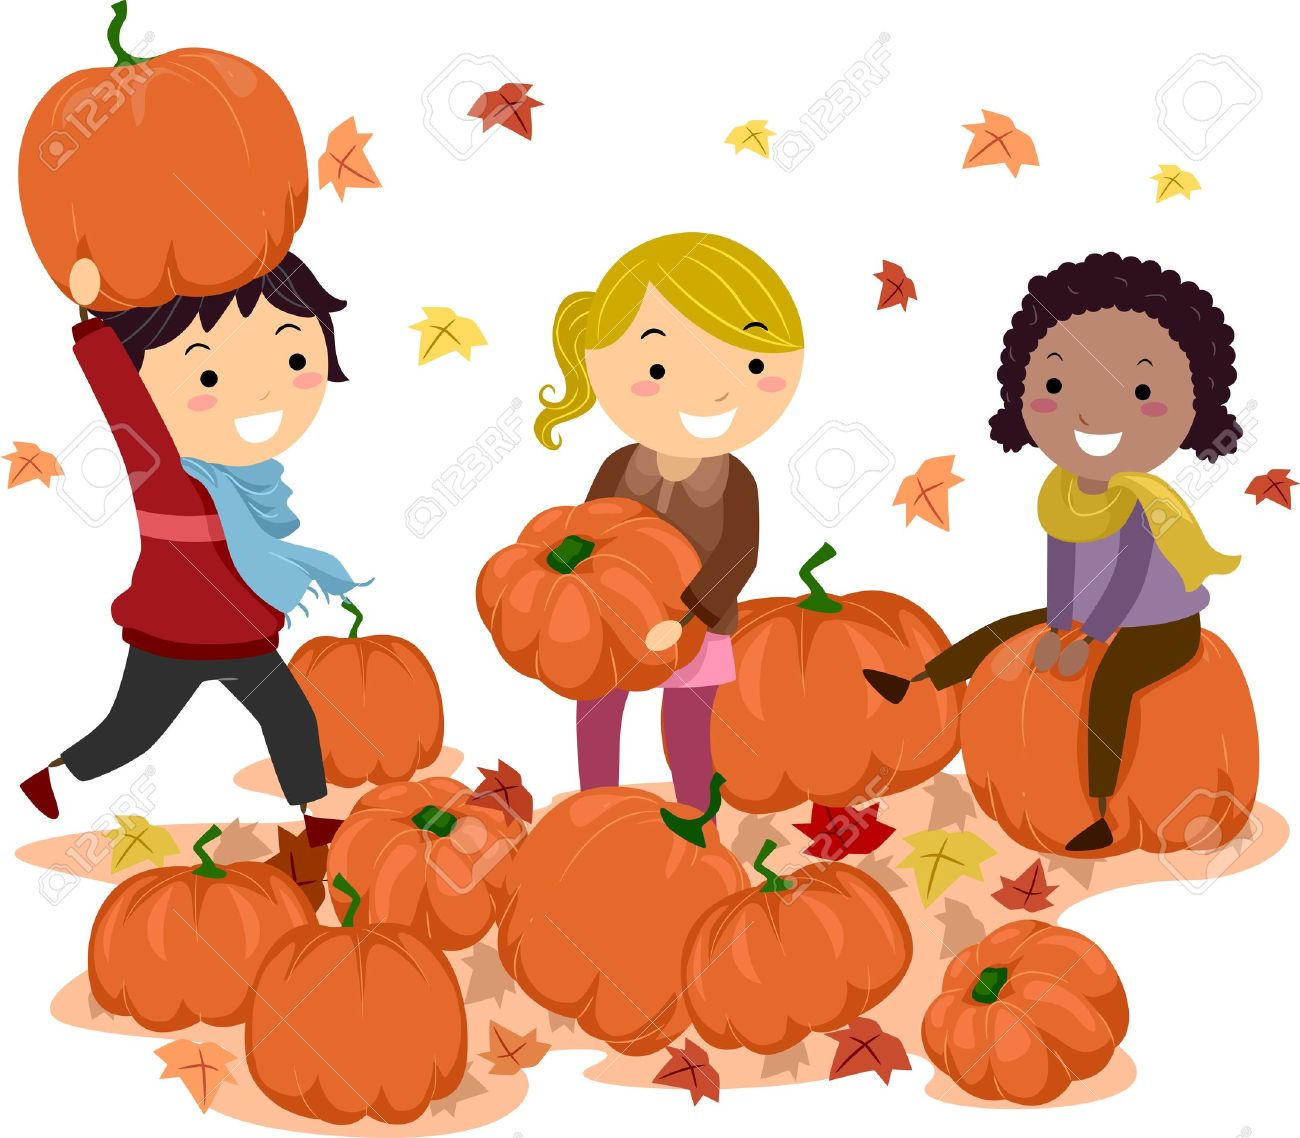 Little Pumpkin Girl Images & Stock Pictures. Royalty Free Little.